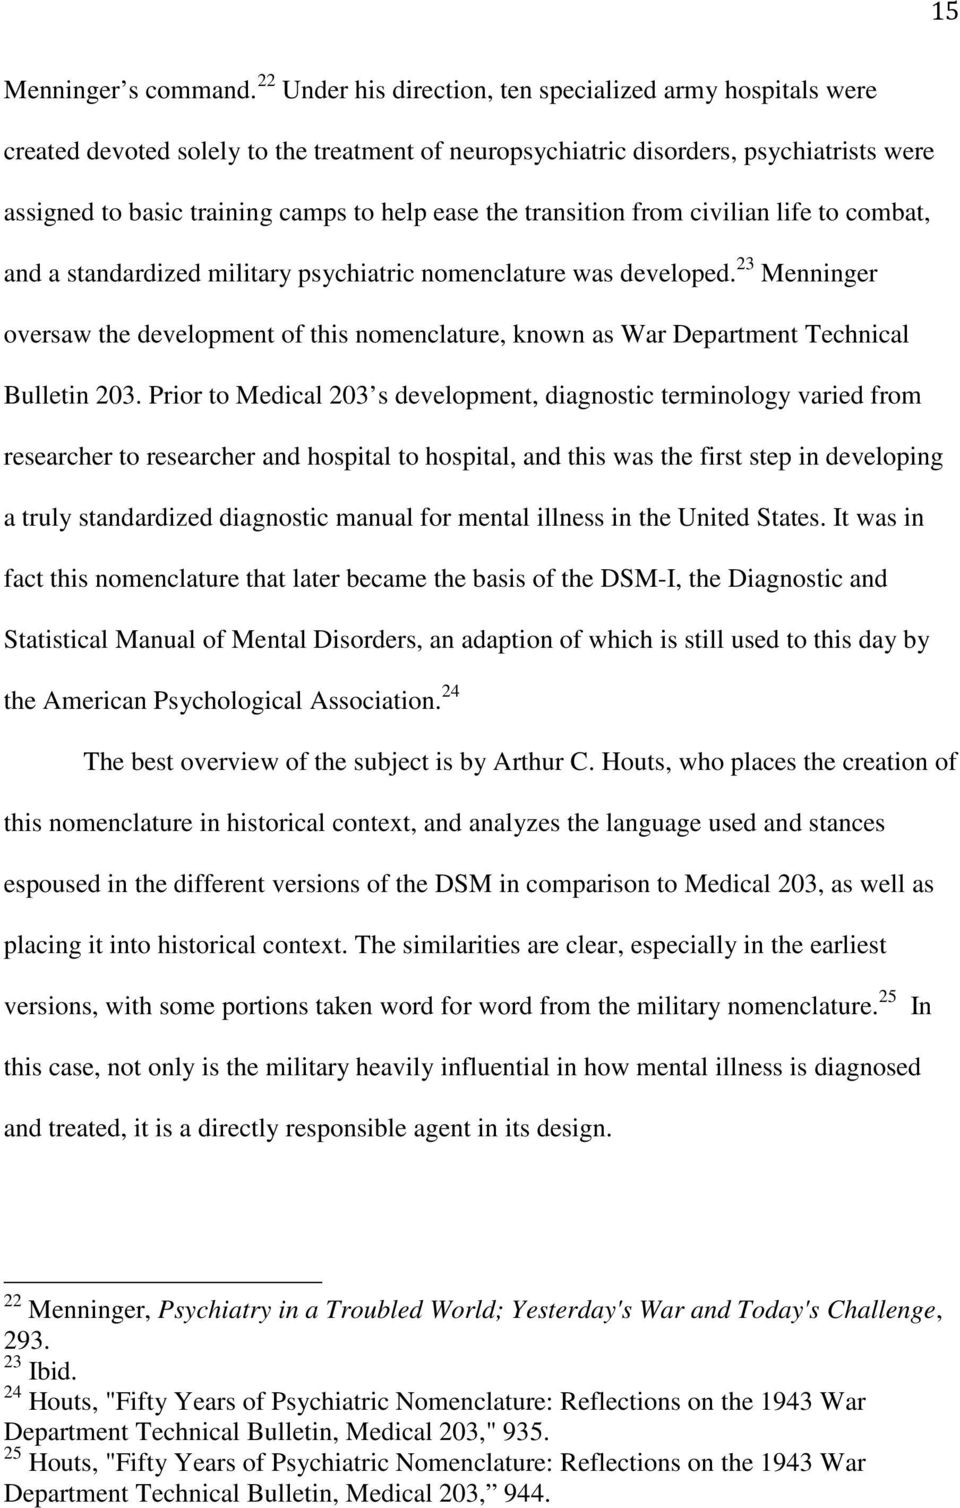 transition from civilian life to combat, and a standardized military  psychiatric nomenclature was developed.